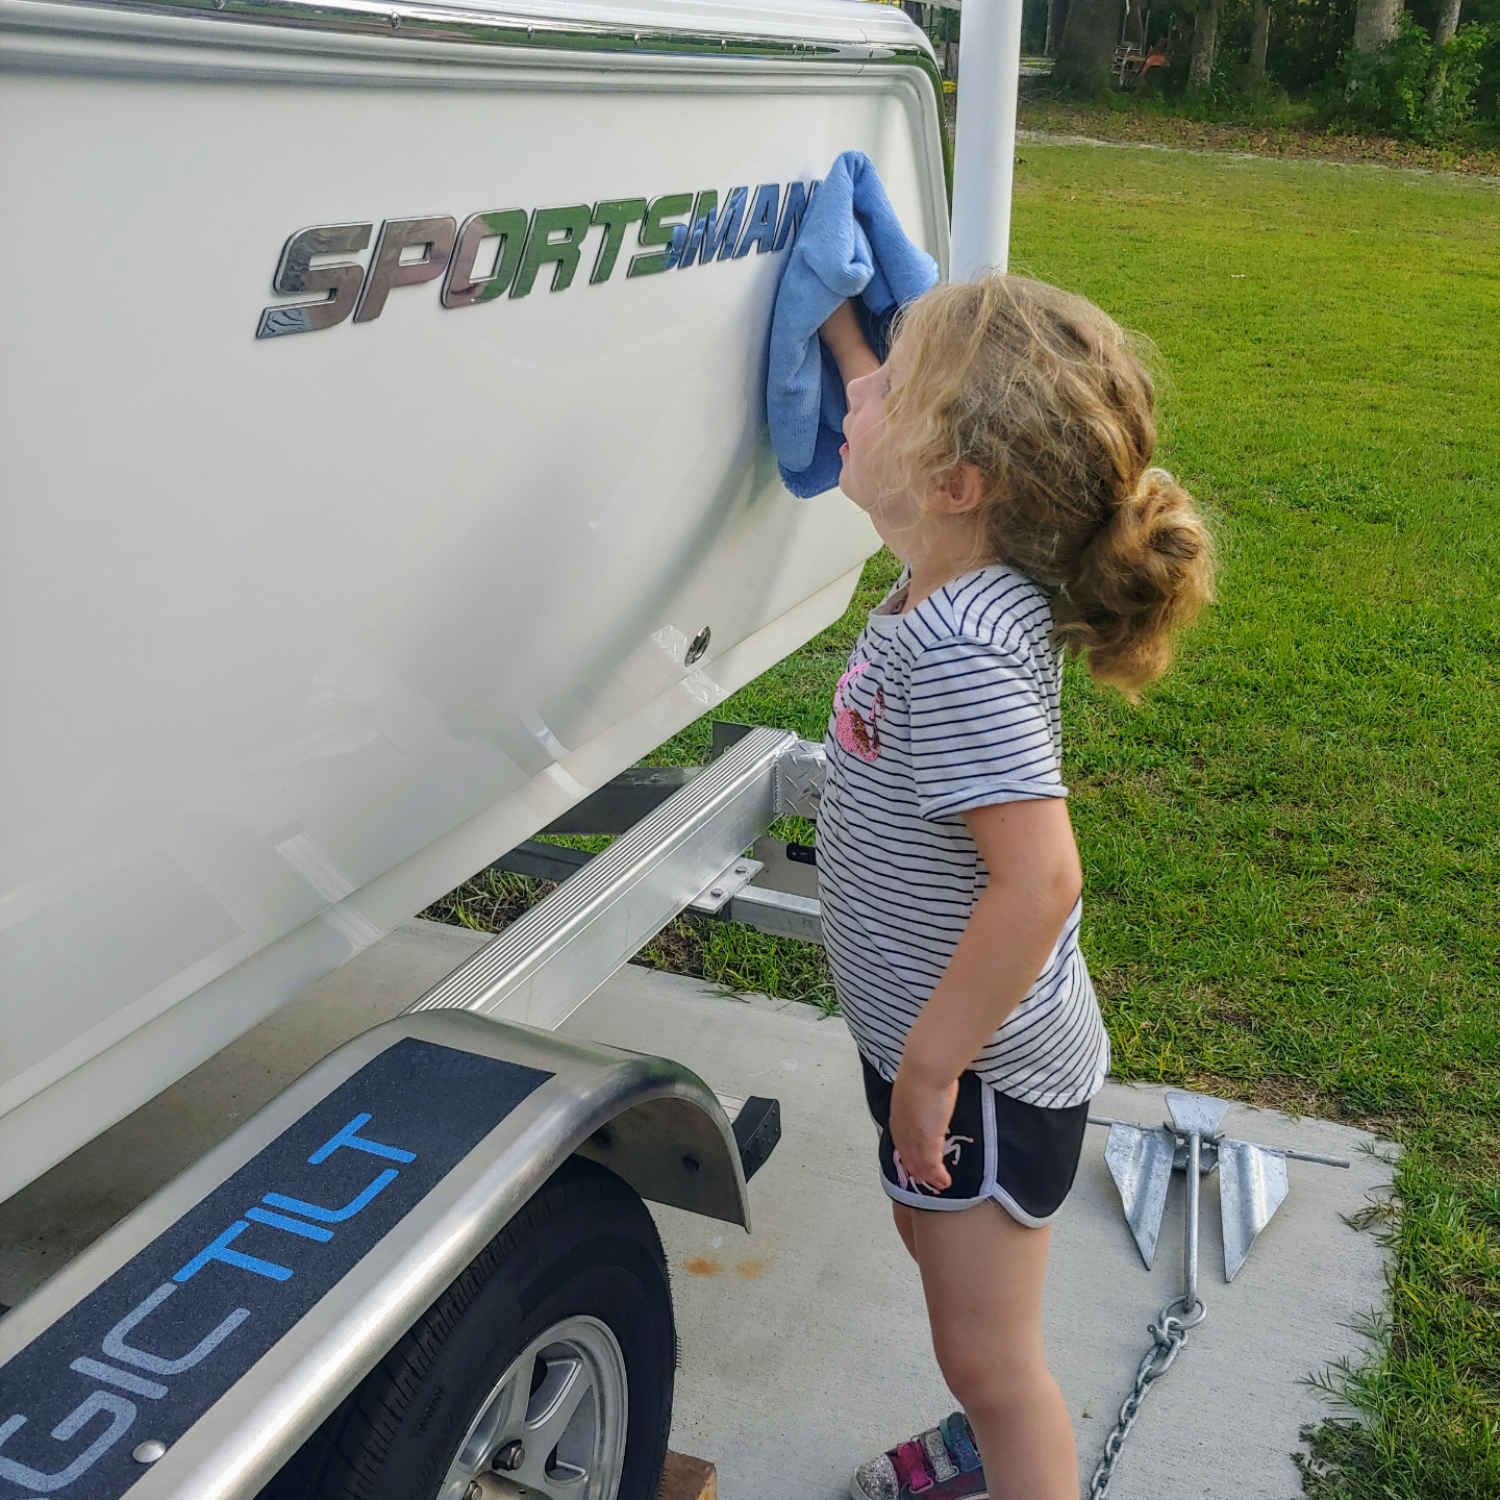 Title: Lil bit is shining her up! - On board their Sportsman Open 212 Center Console - Location: Richmond Hill, GA. Participating in the Photo Contest #SportsmanJuly2020